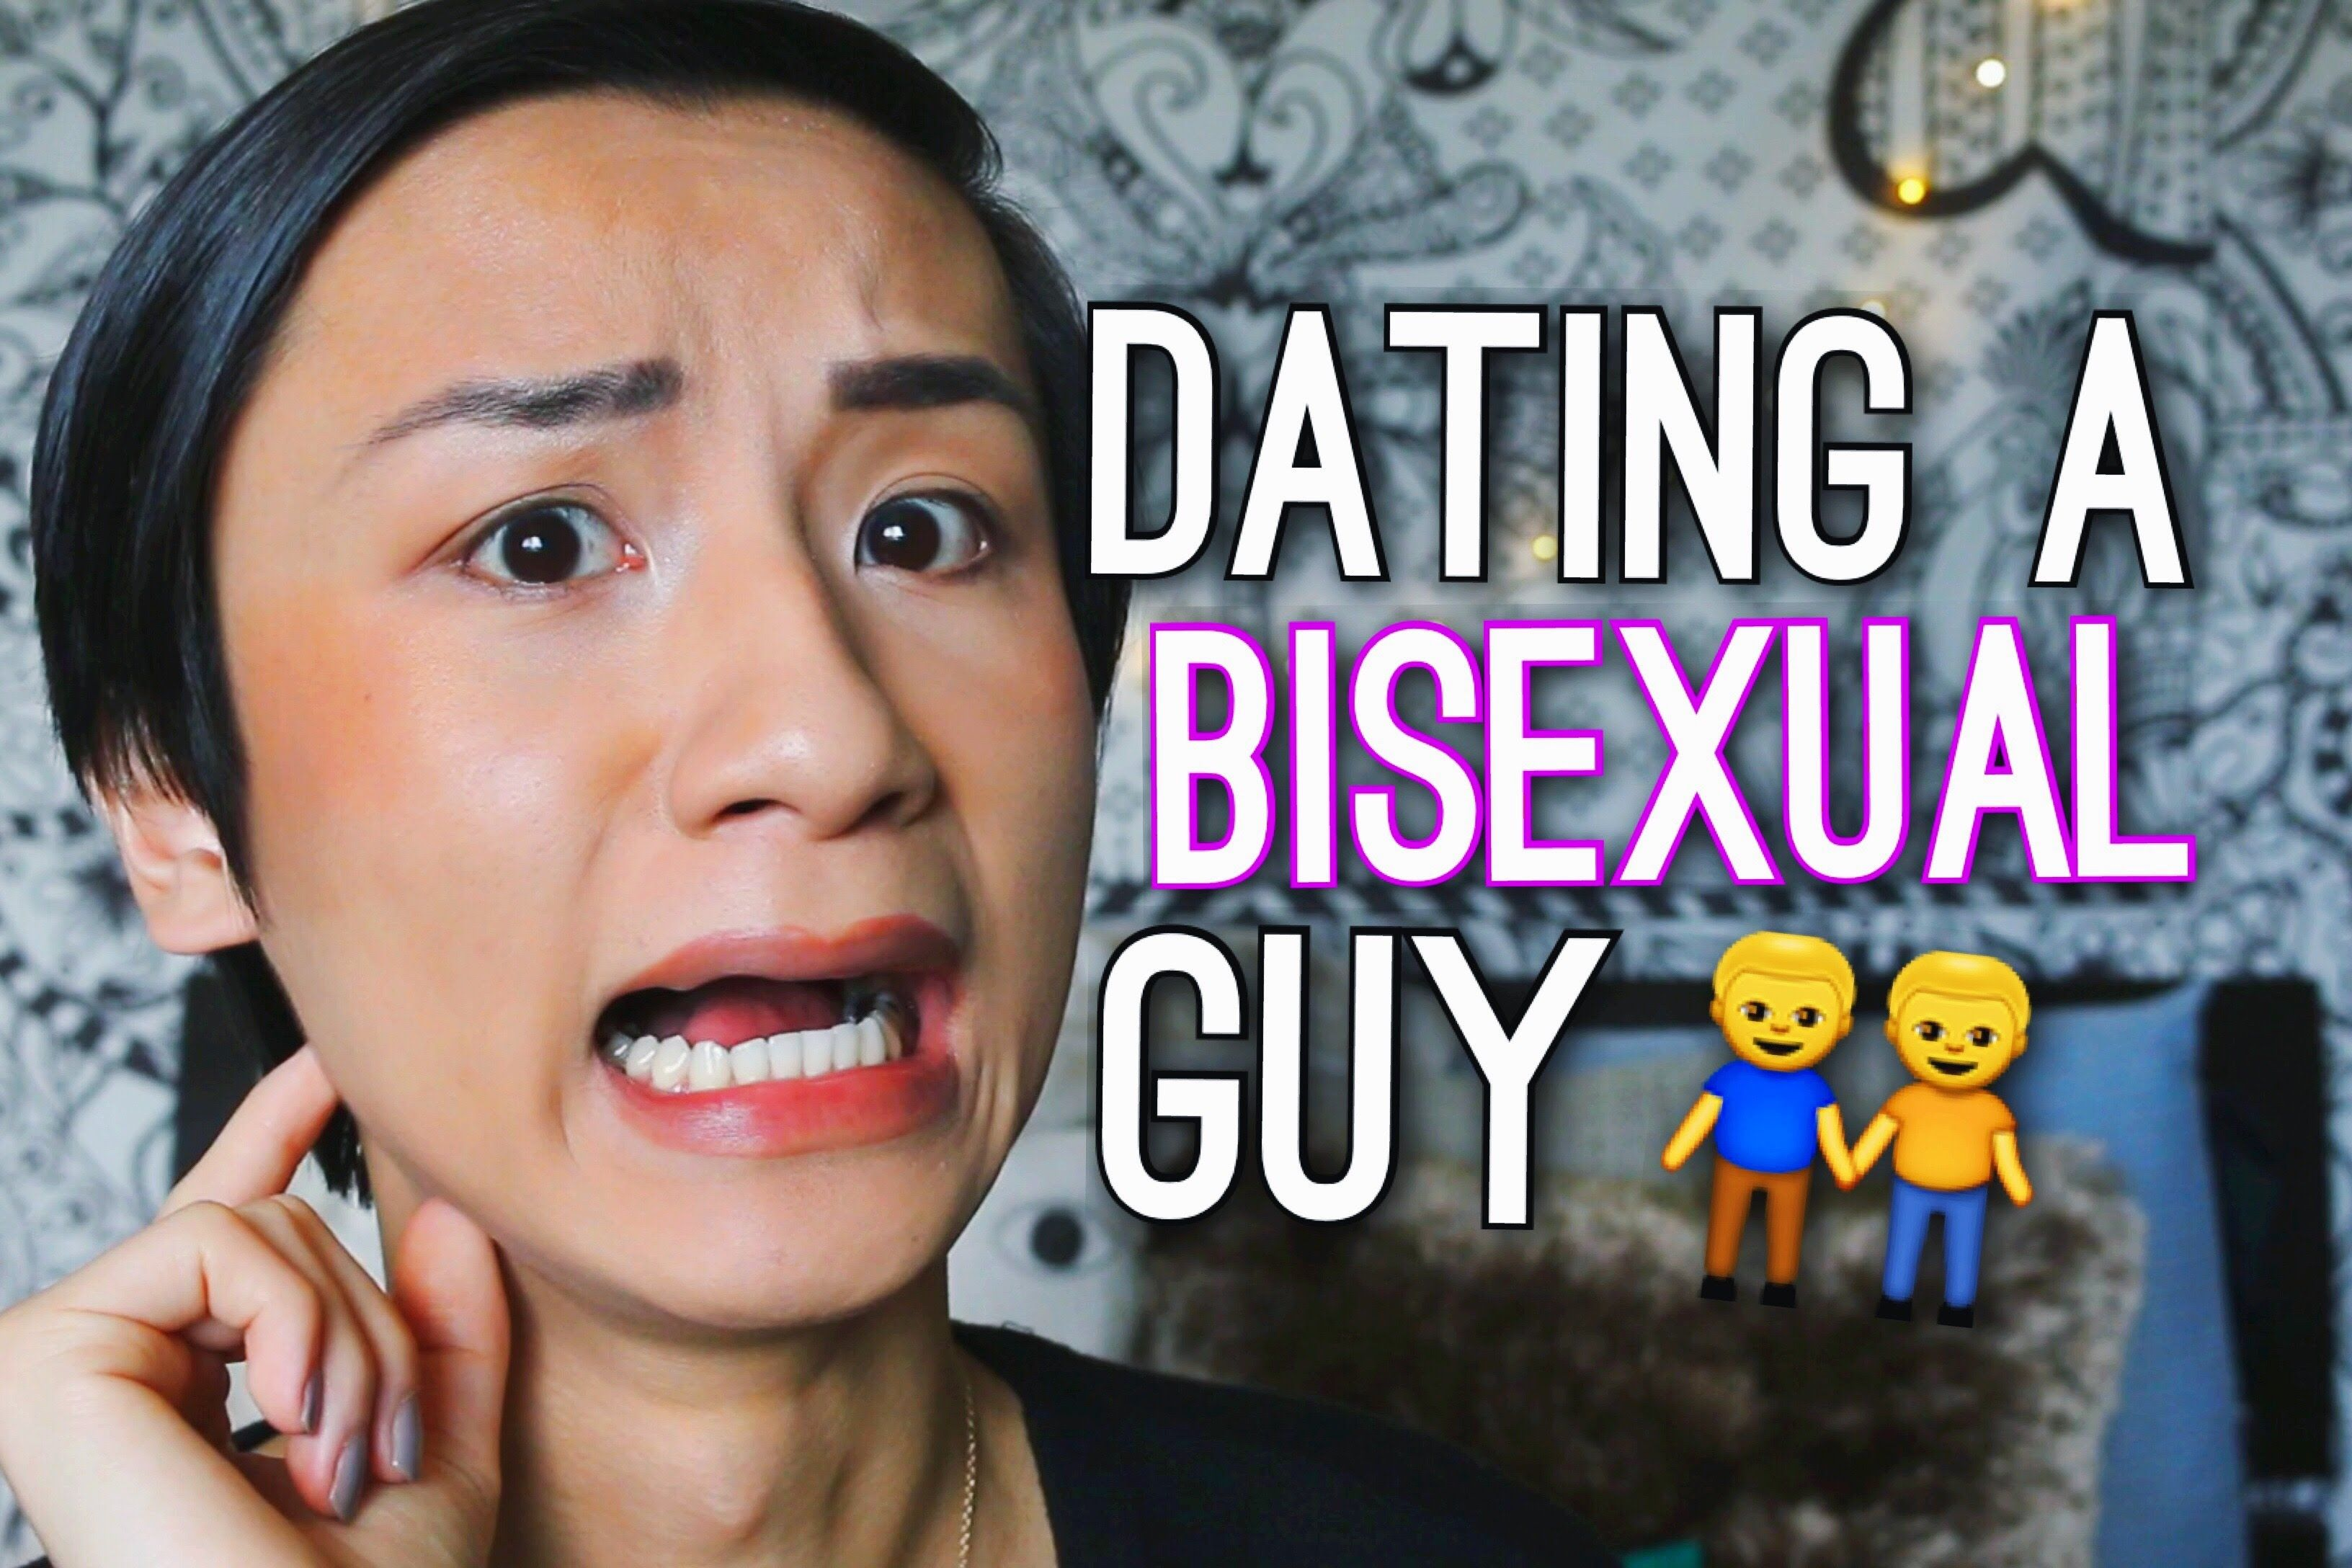 Dating bisexual guy